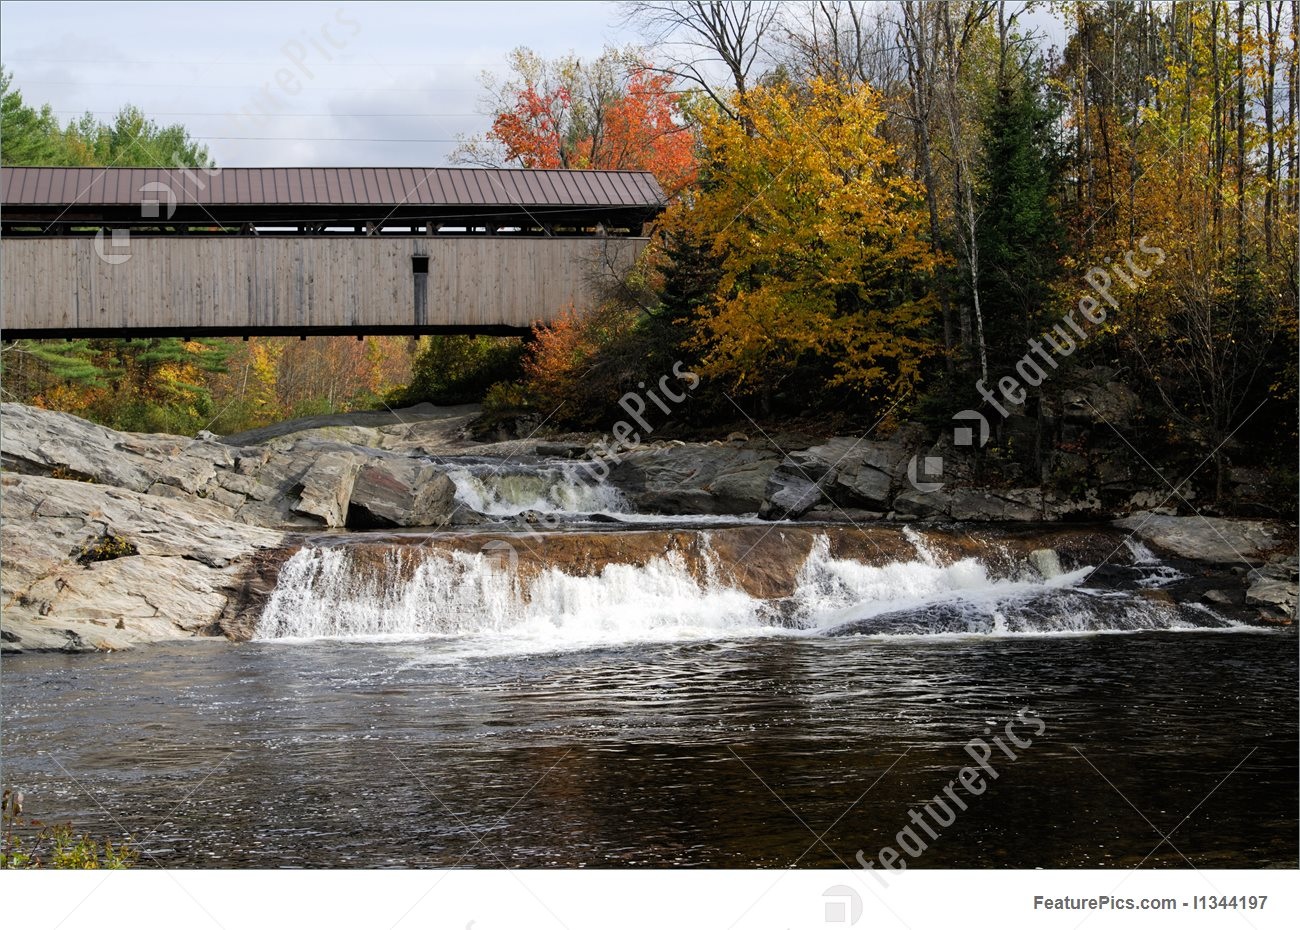 Ammonoosuc River clipart #8, Download drawings